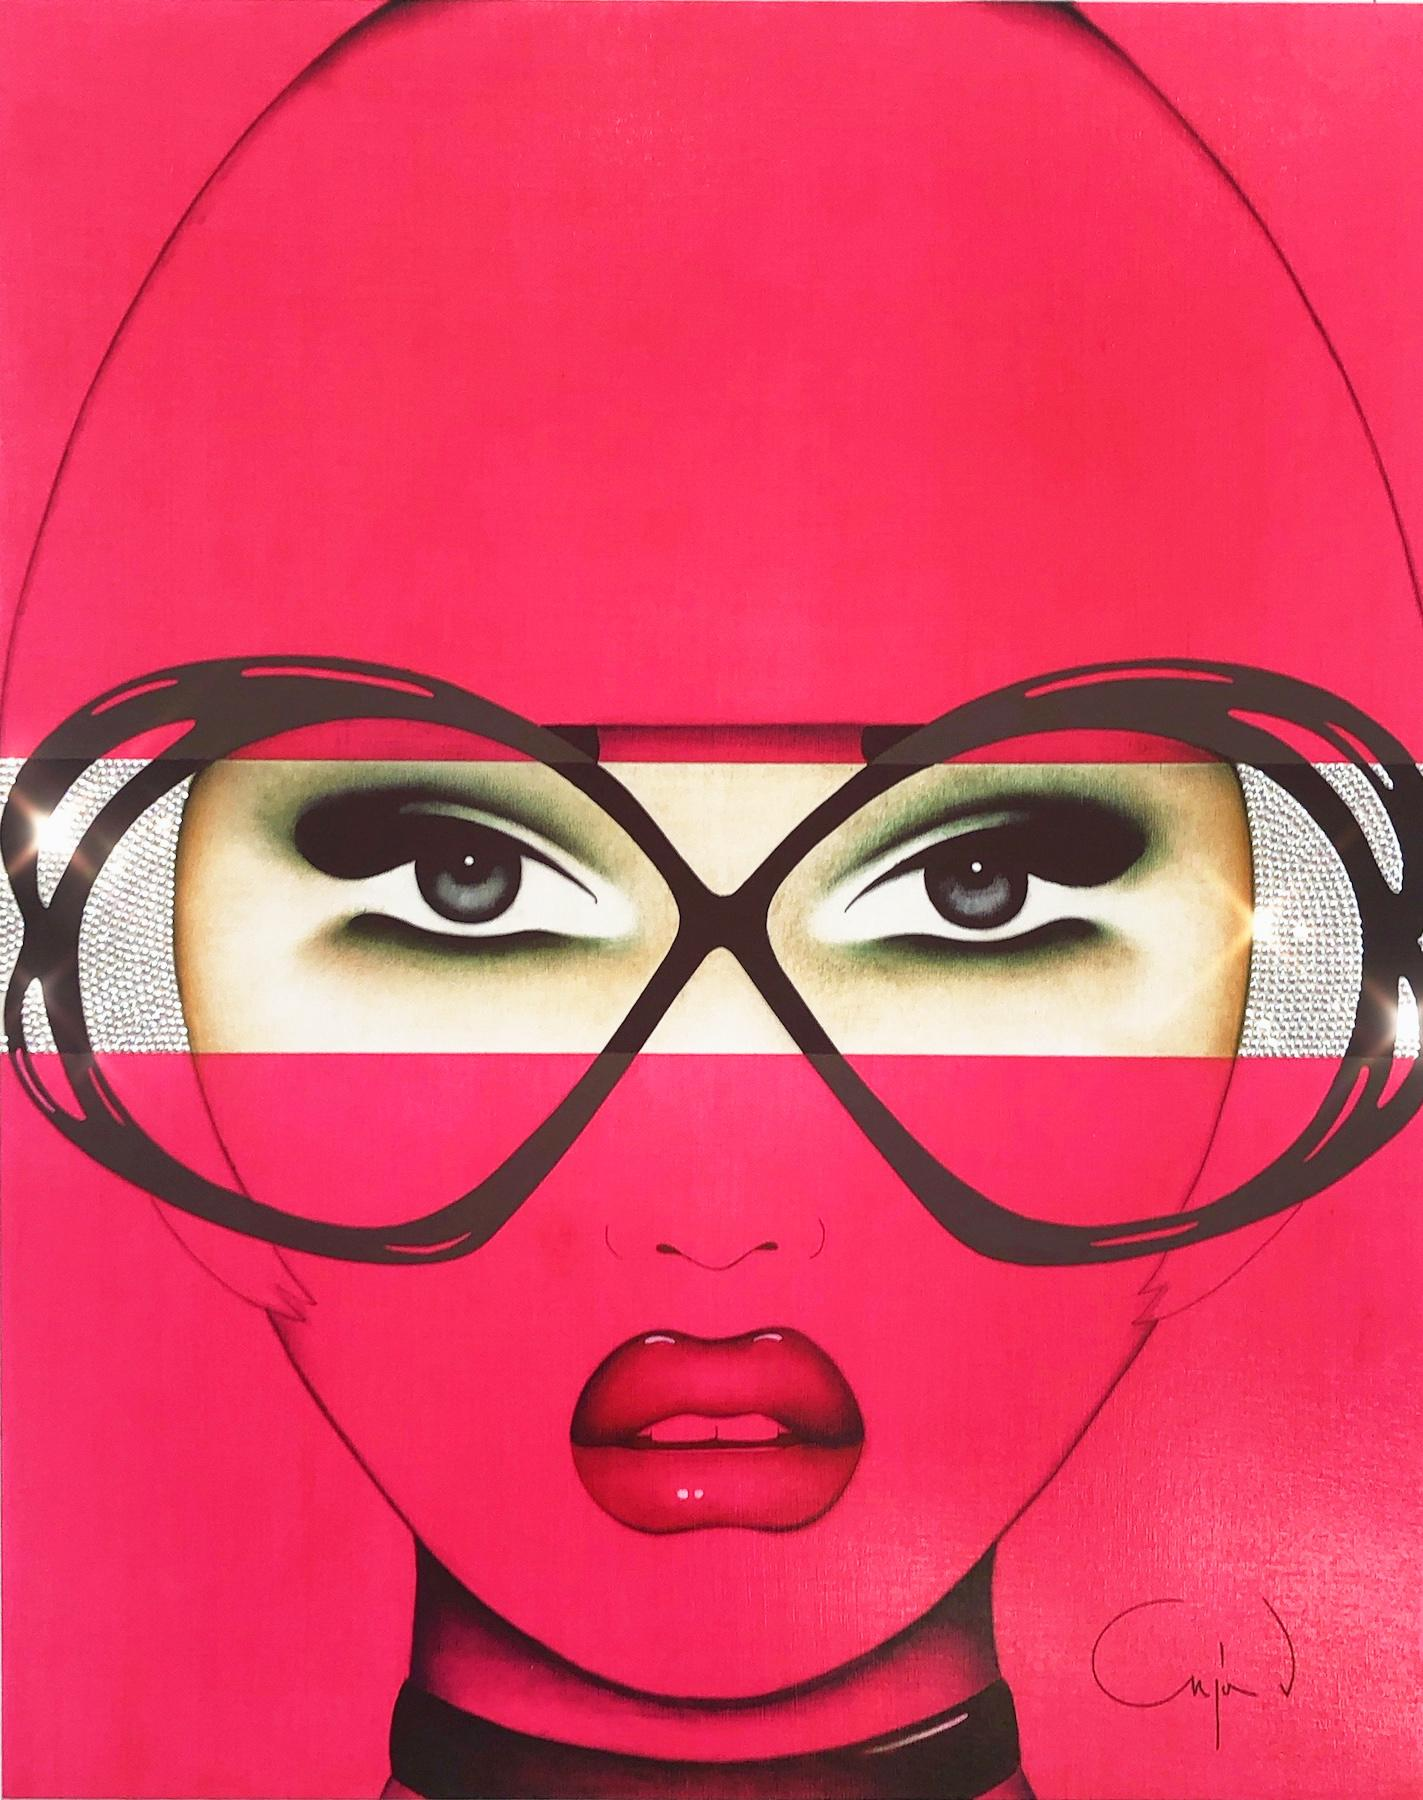 For Your Eyes Only, Anja Van Herle, Female Portrait, Pop Art (Pink, Figurative)